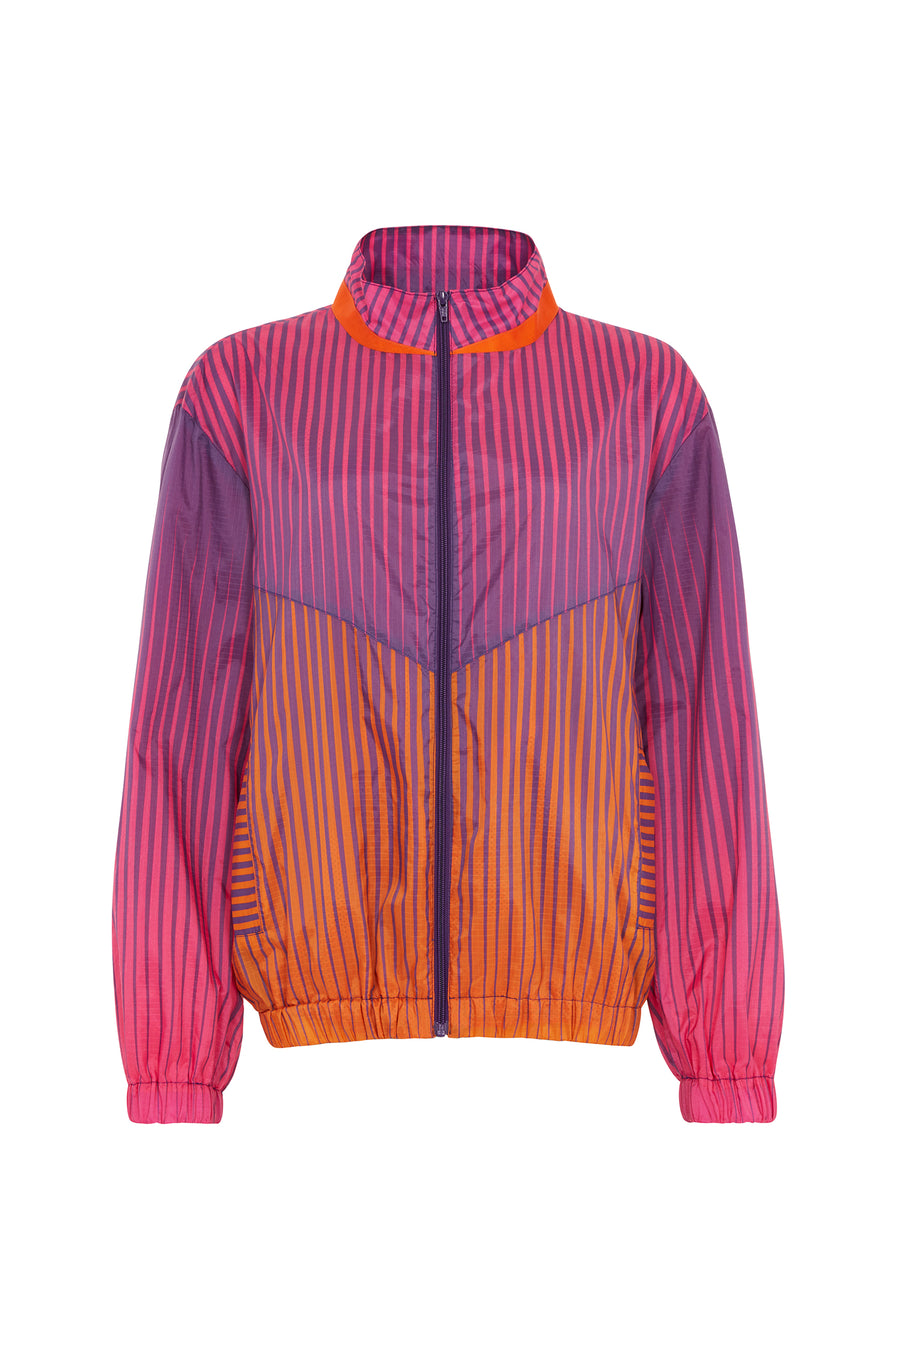 Andrew Brischler Neon Print Track Top (Pink & Orange) by House of Holland